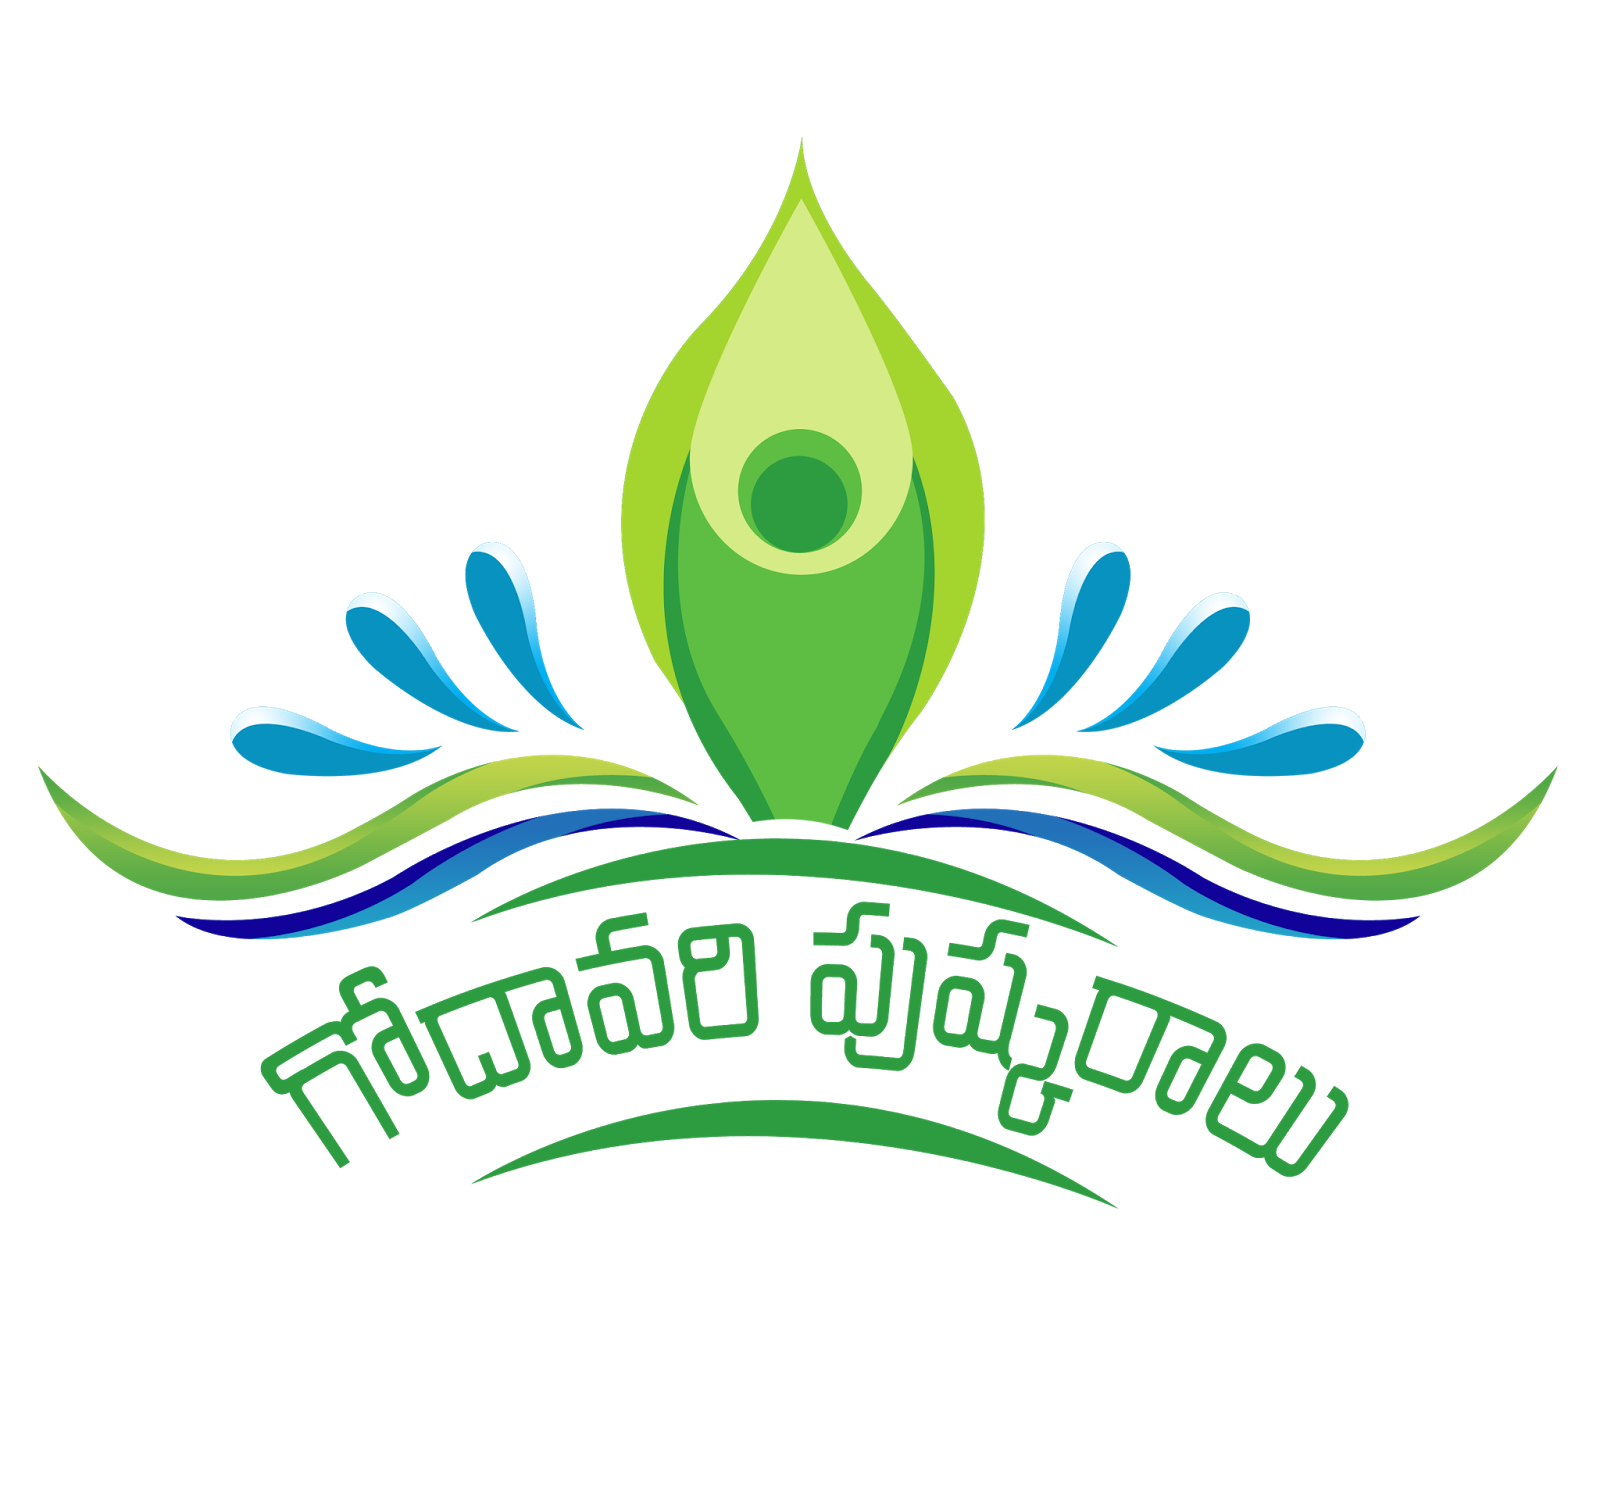 Godavari-pushkaralu-logo-design-psd-file | Vector files | Pinterest for Logo Design Samples Free Download  111ane